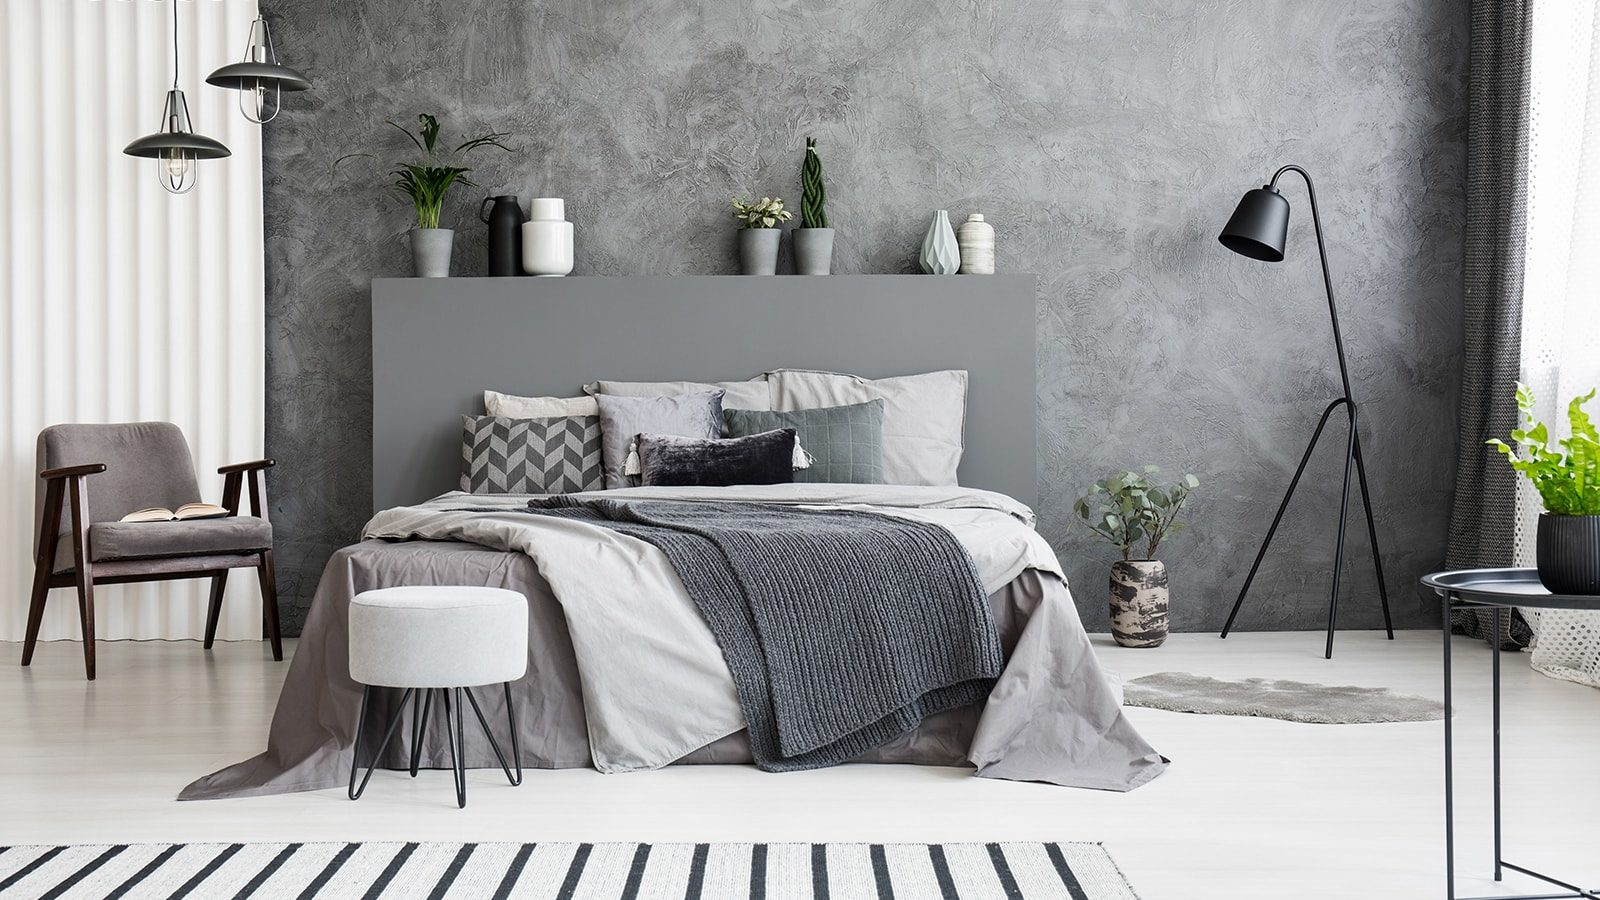 Grey bedroom with stool